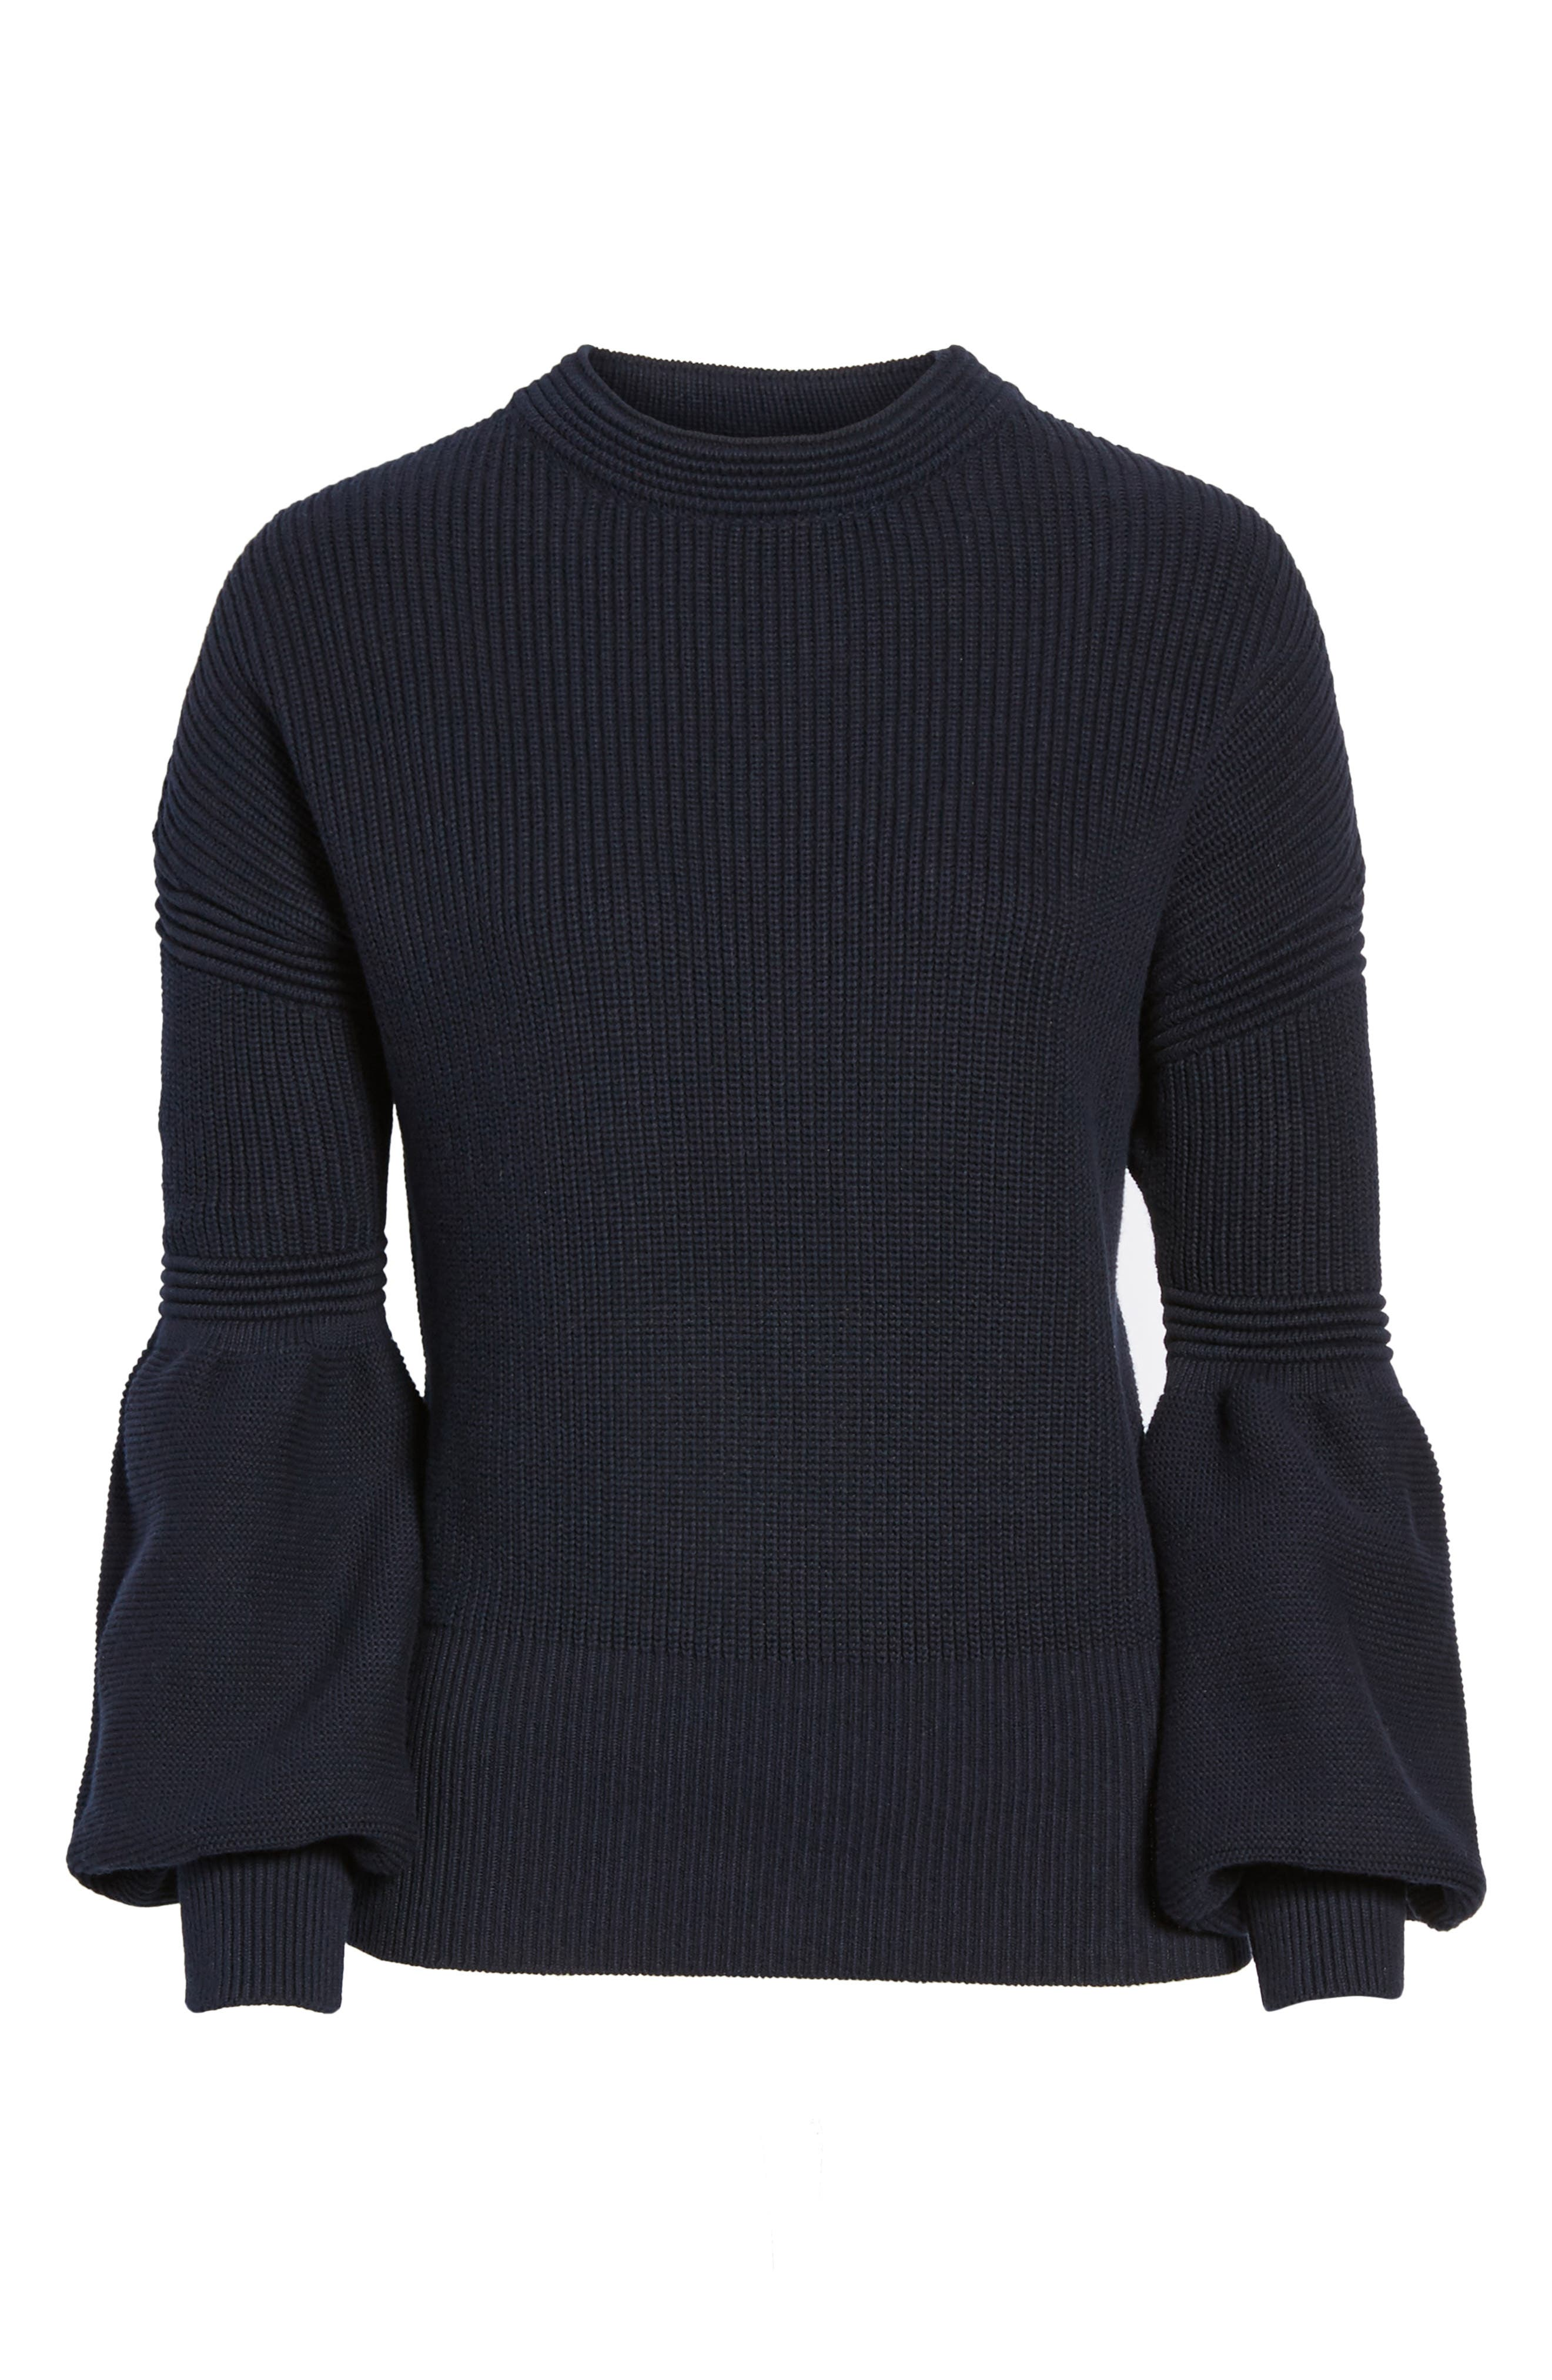 Sculpture Puff Sleeve Sweater,                             Alternate thumbnail 6, color,                             410